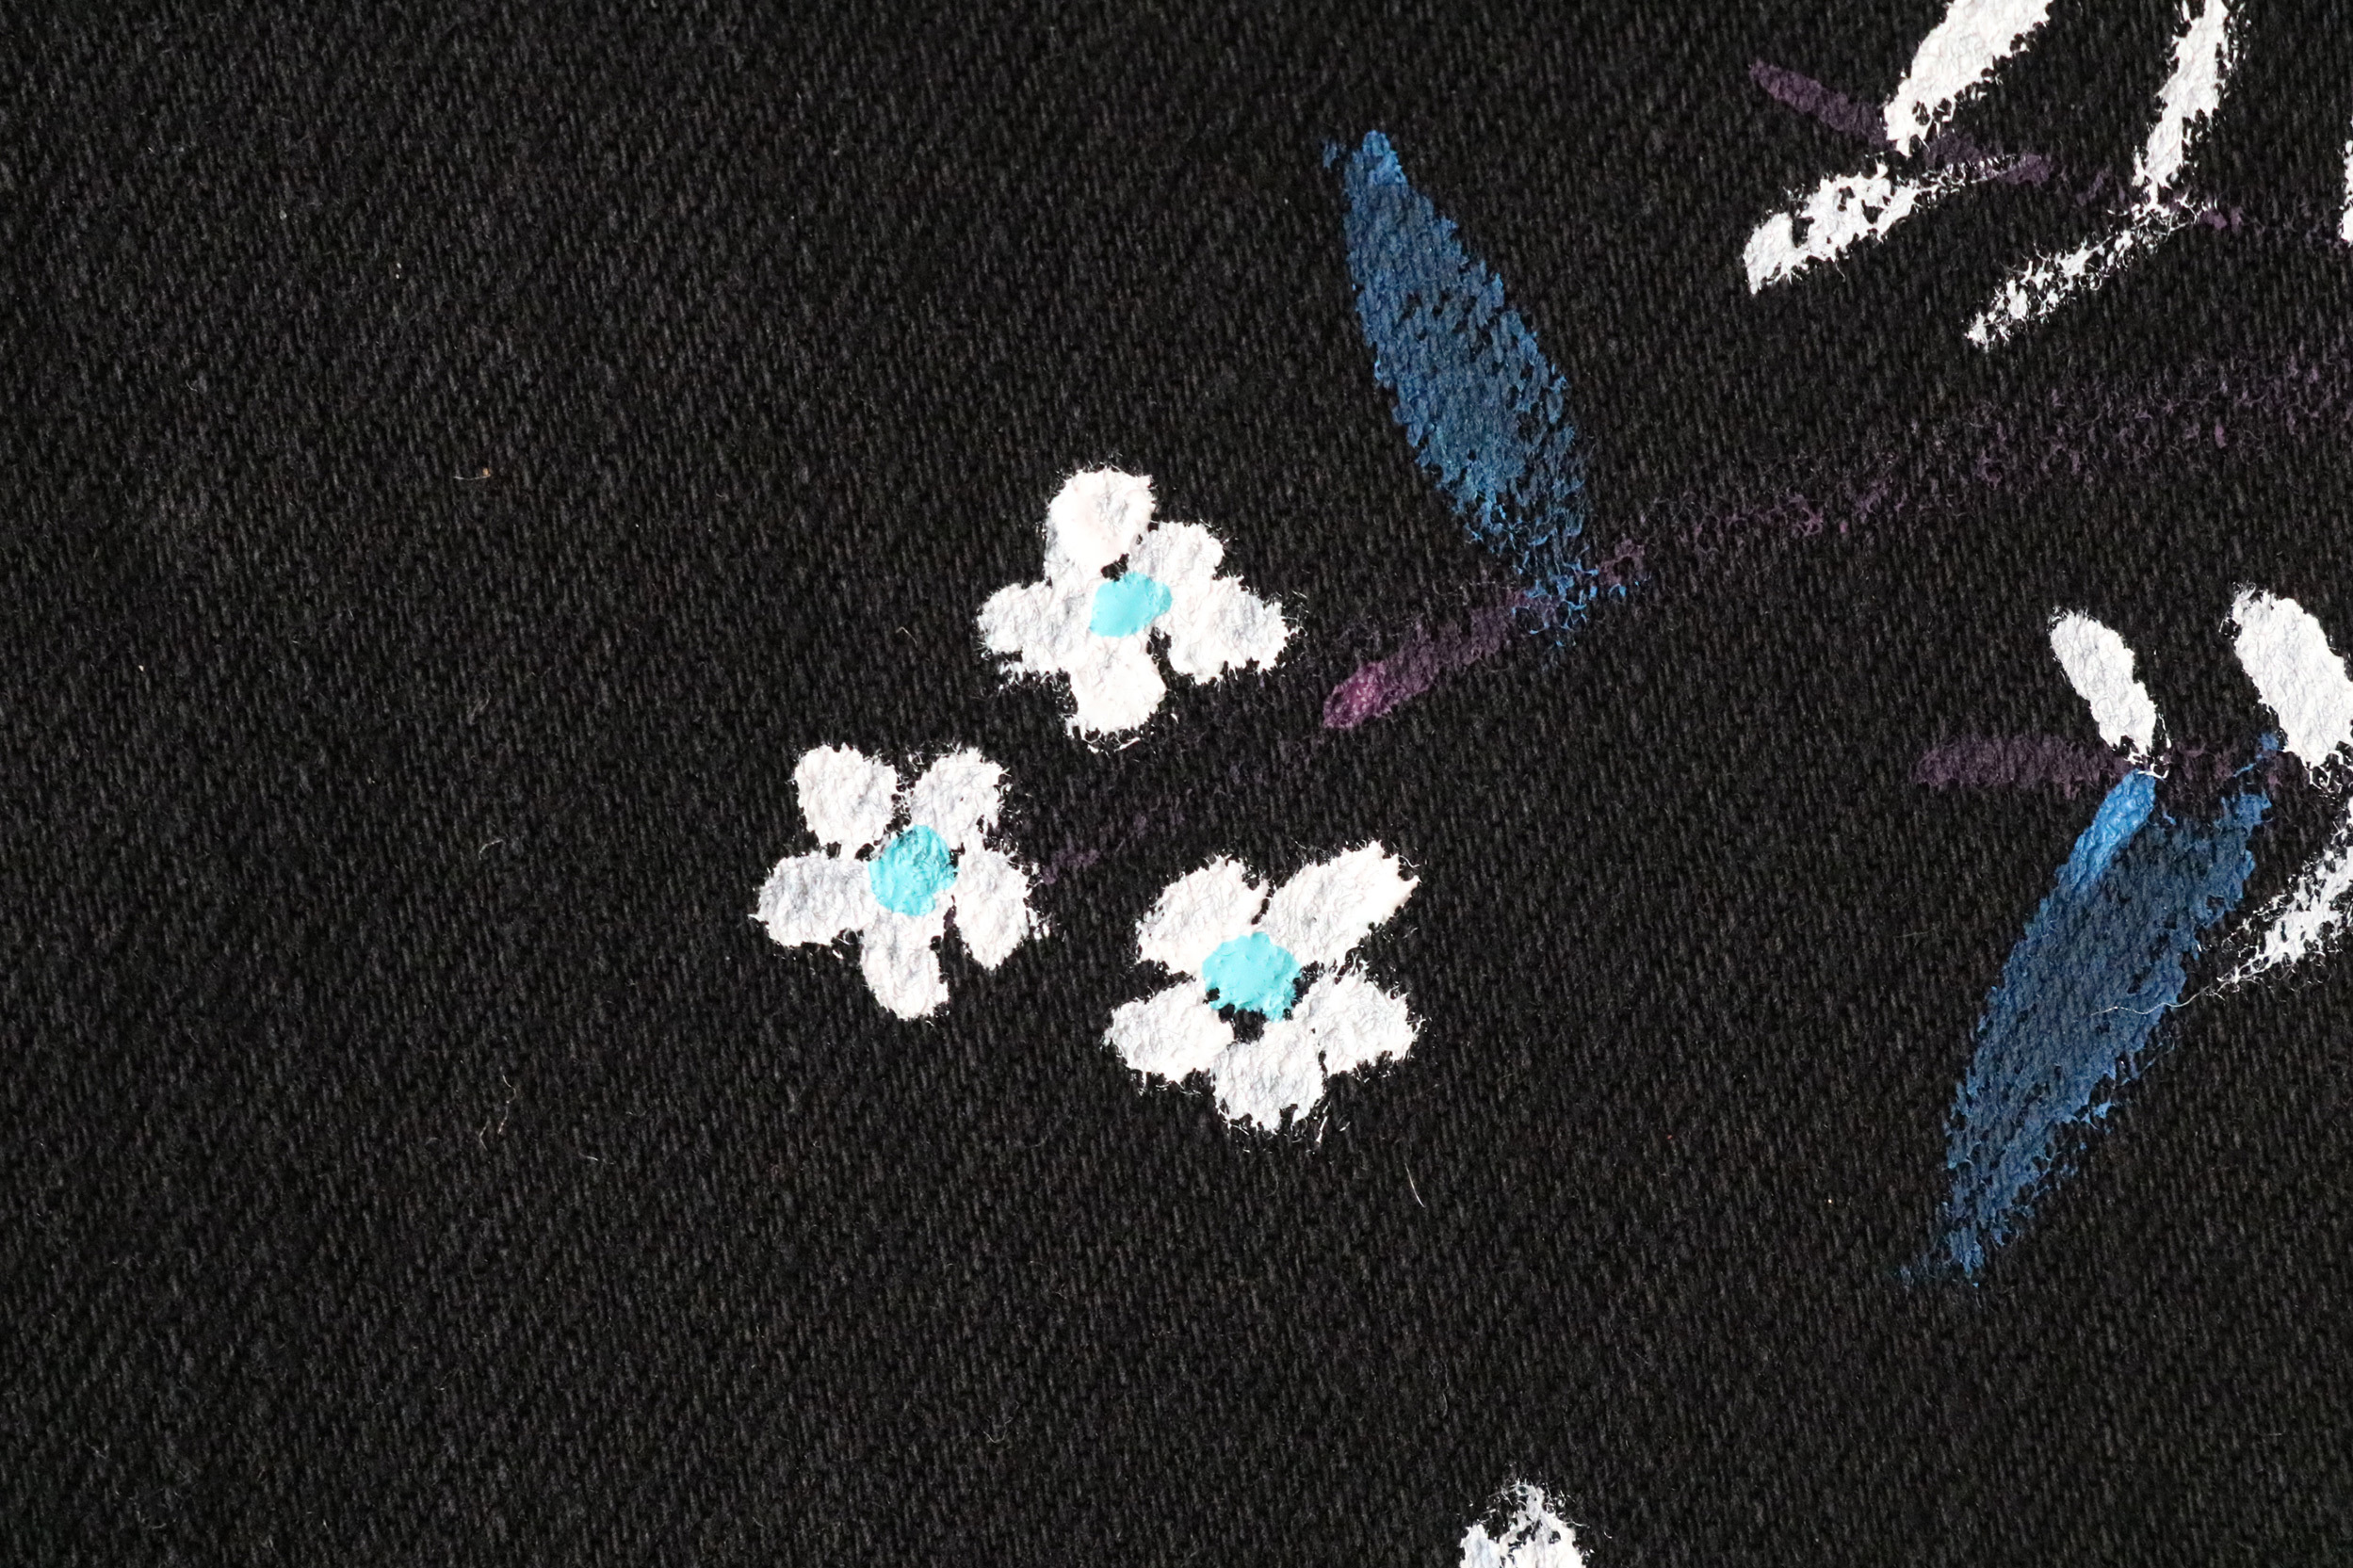 Paint simple flowers on the jeans